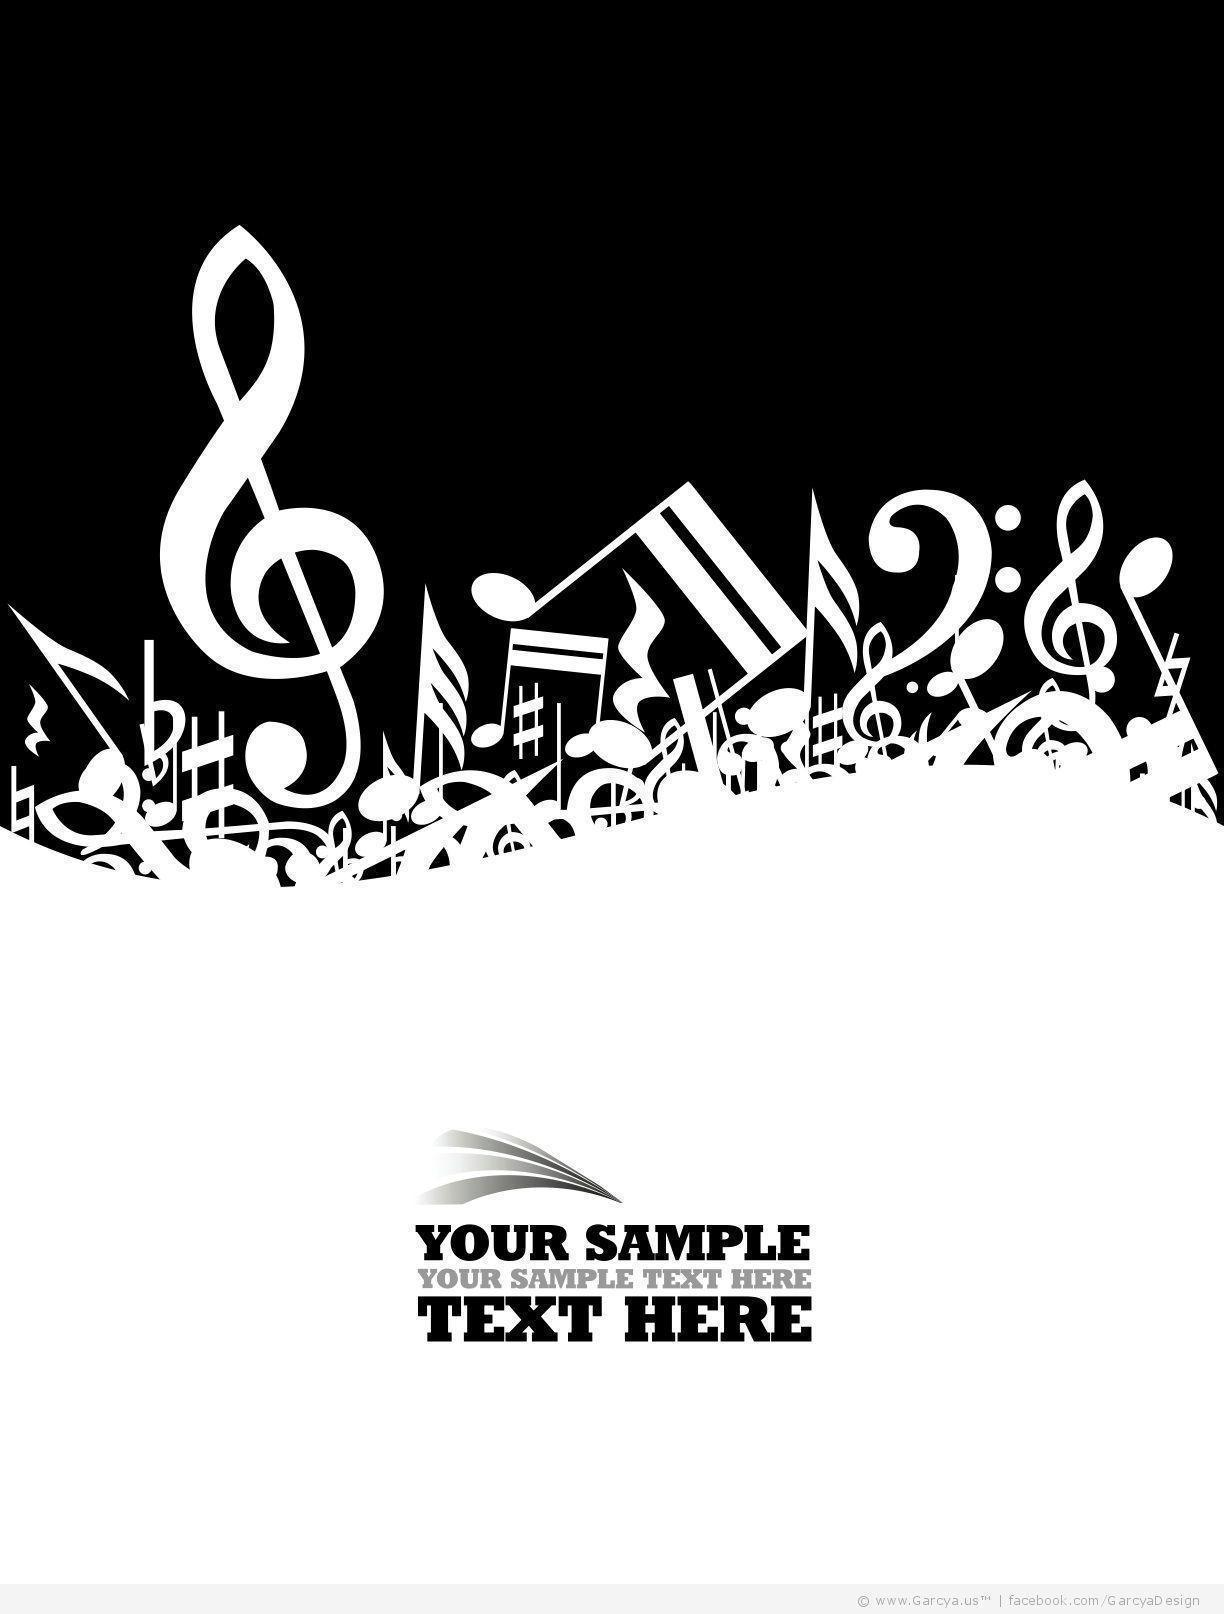 music clipartMusic backgrounds